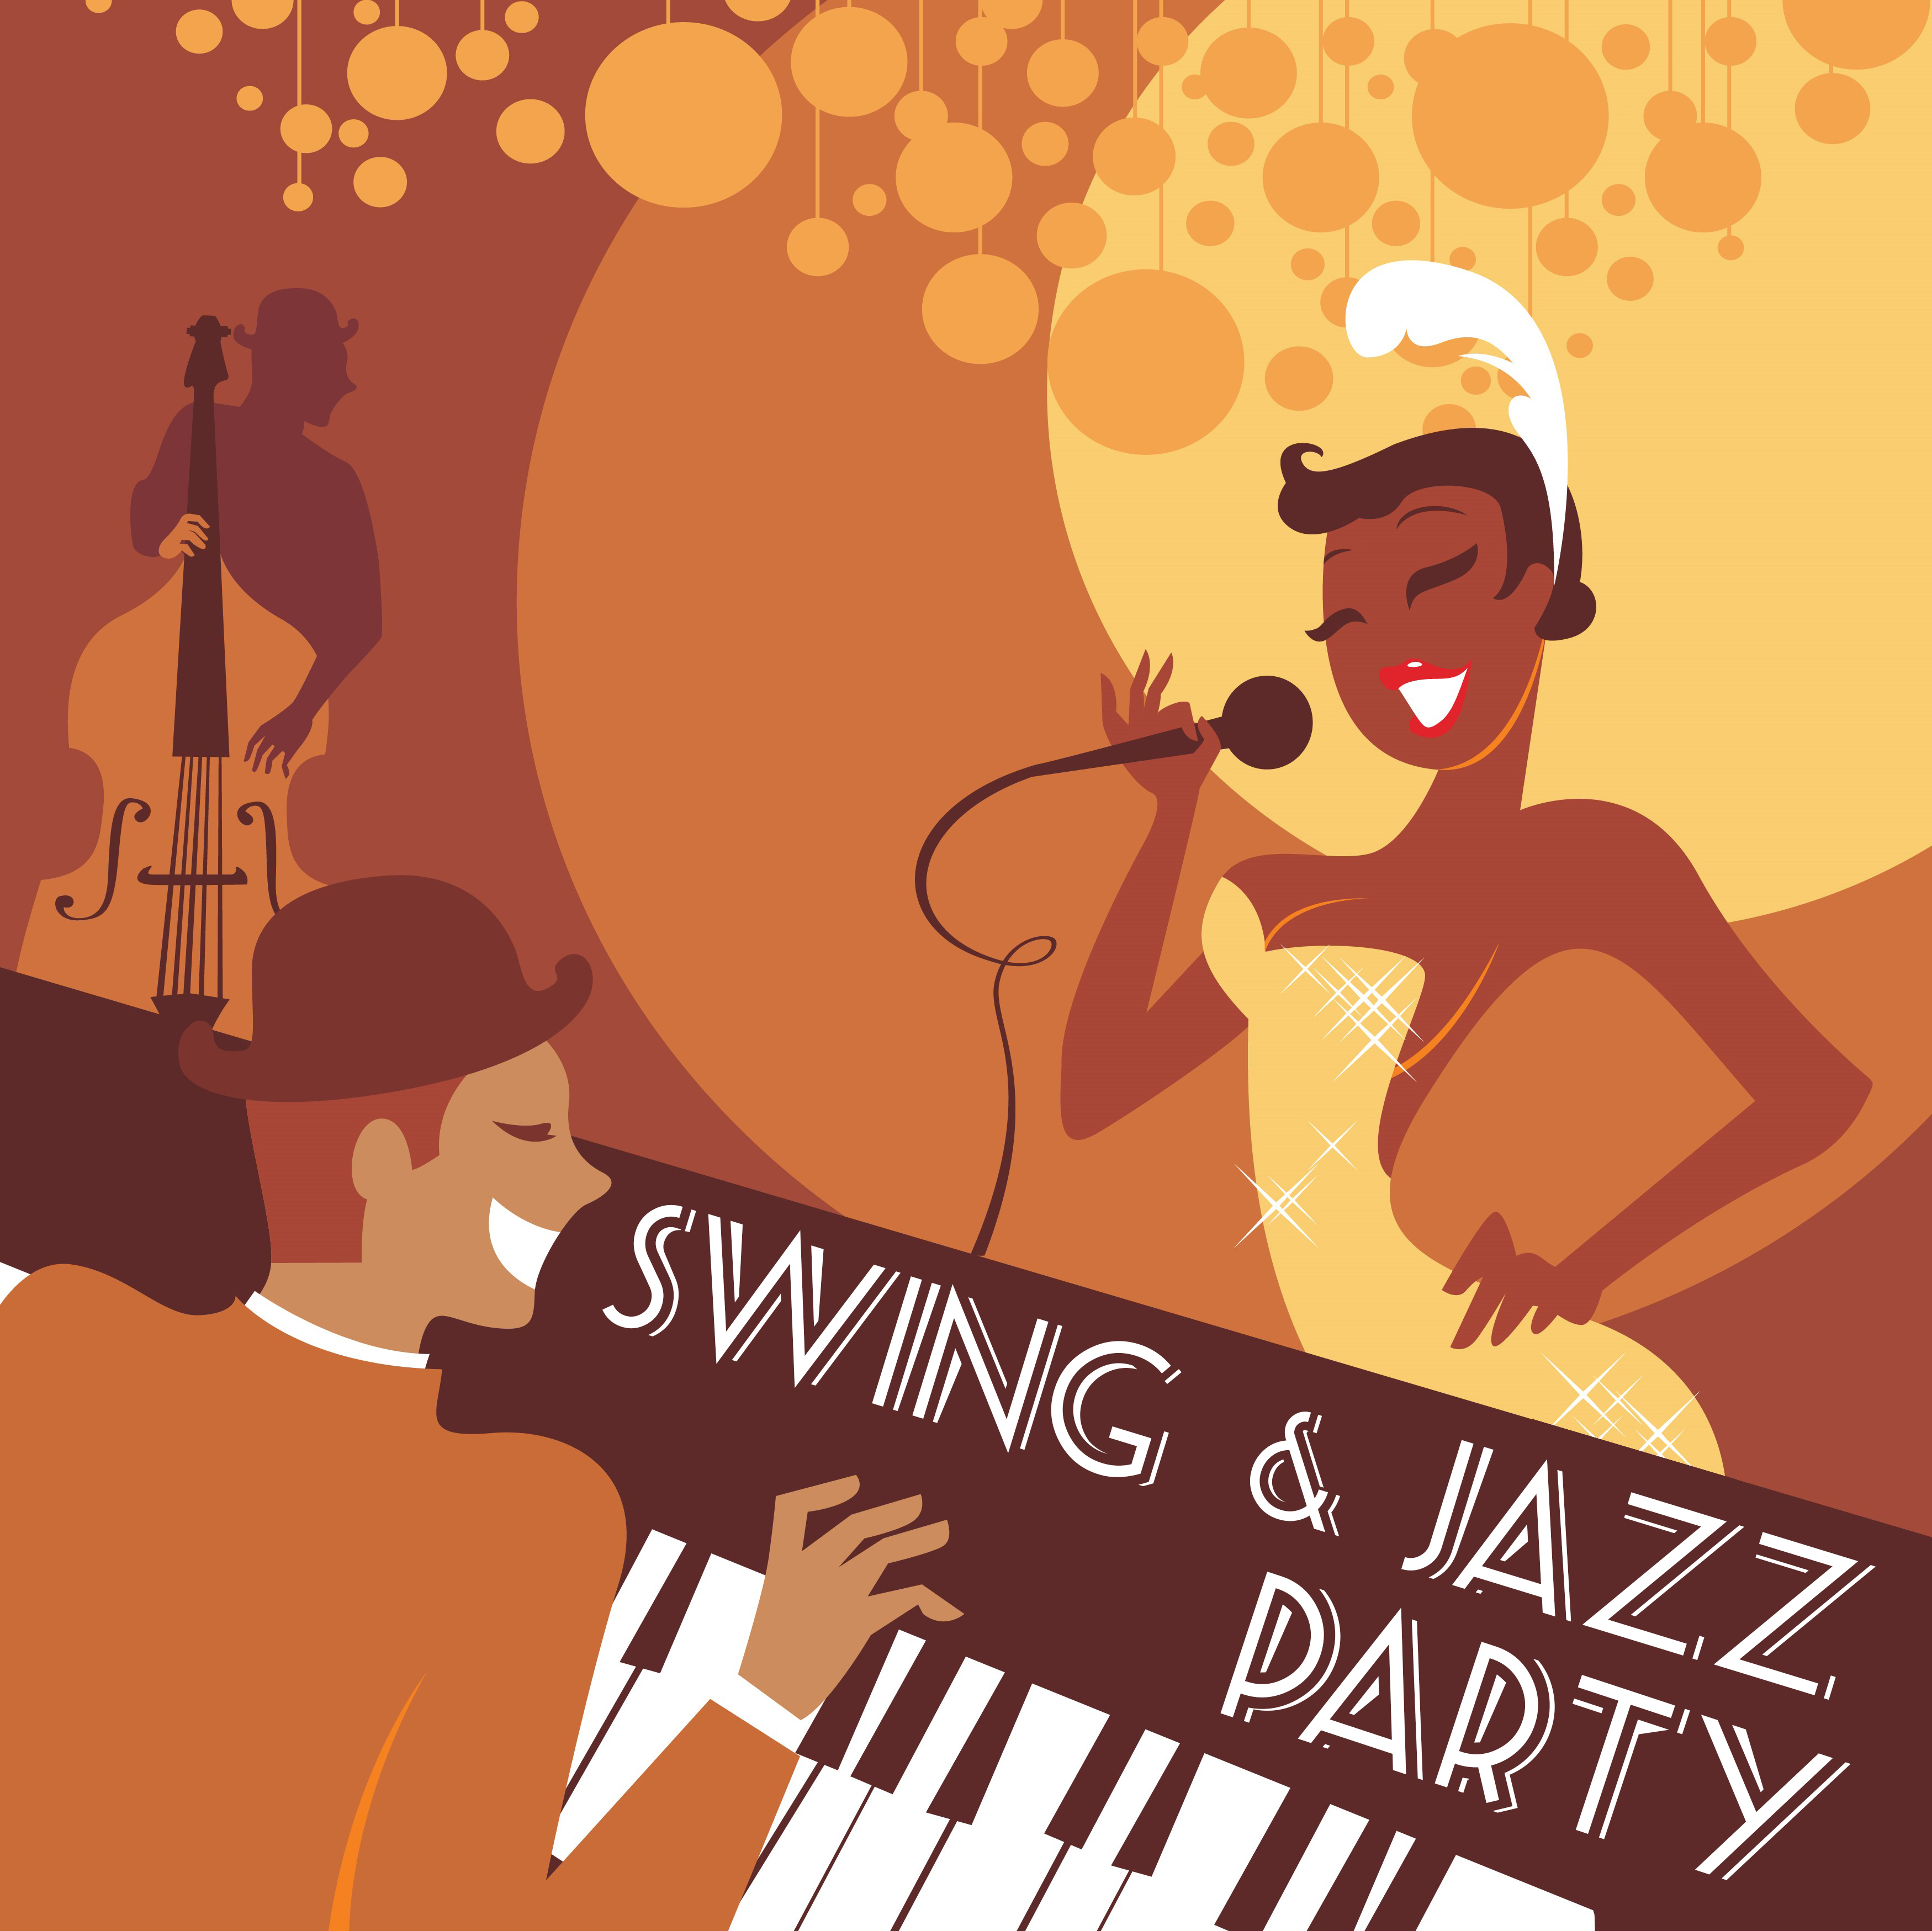 Swing & Jazz Party (Digitally Remastered)